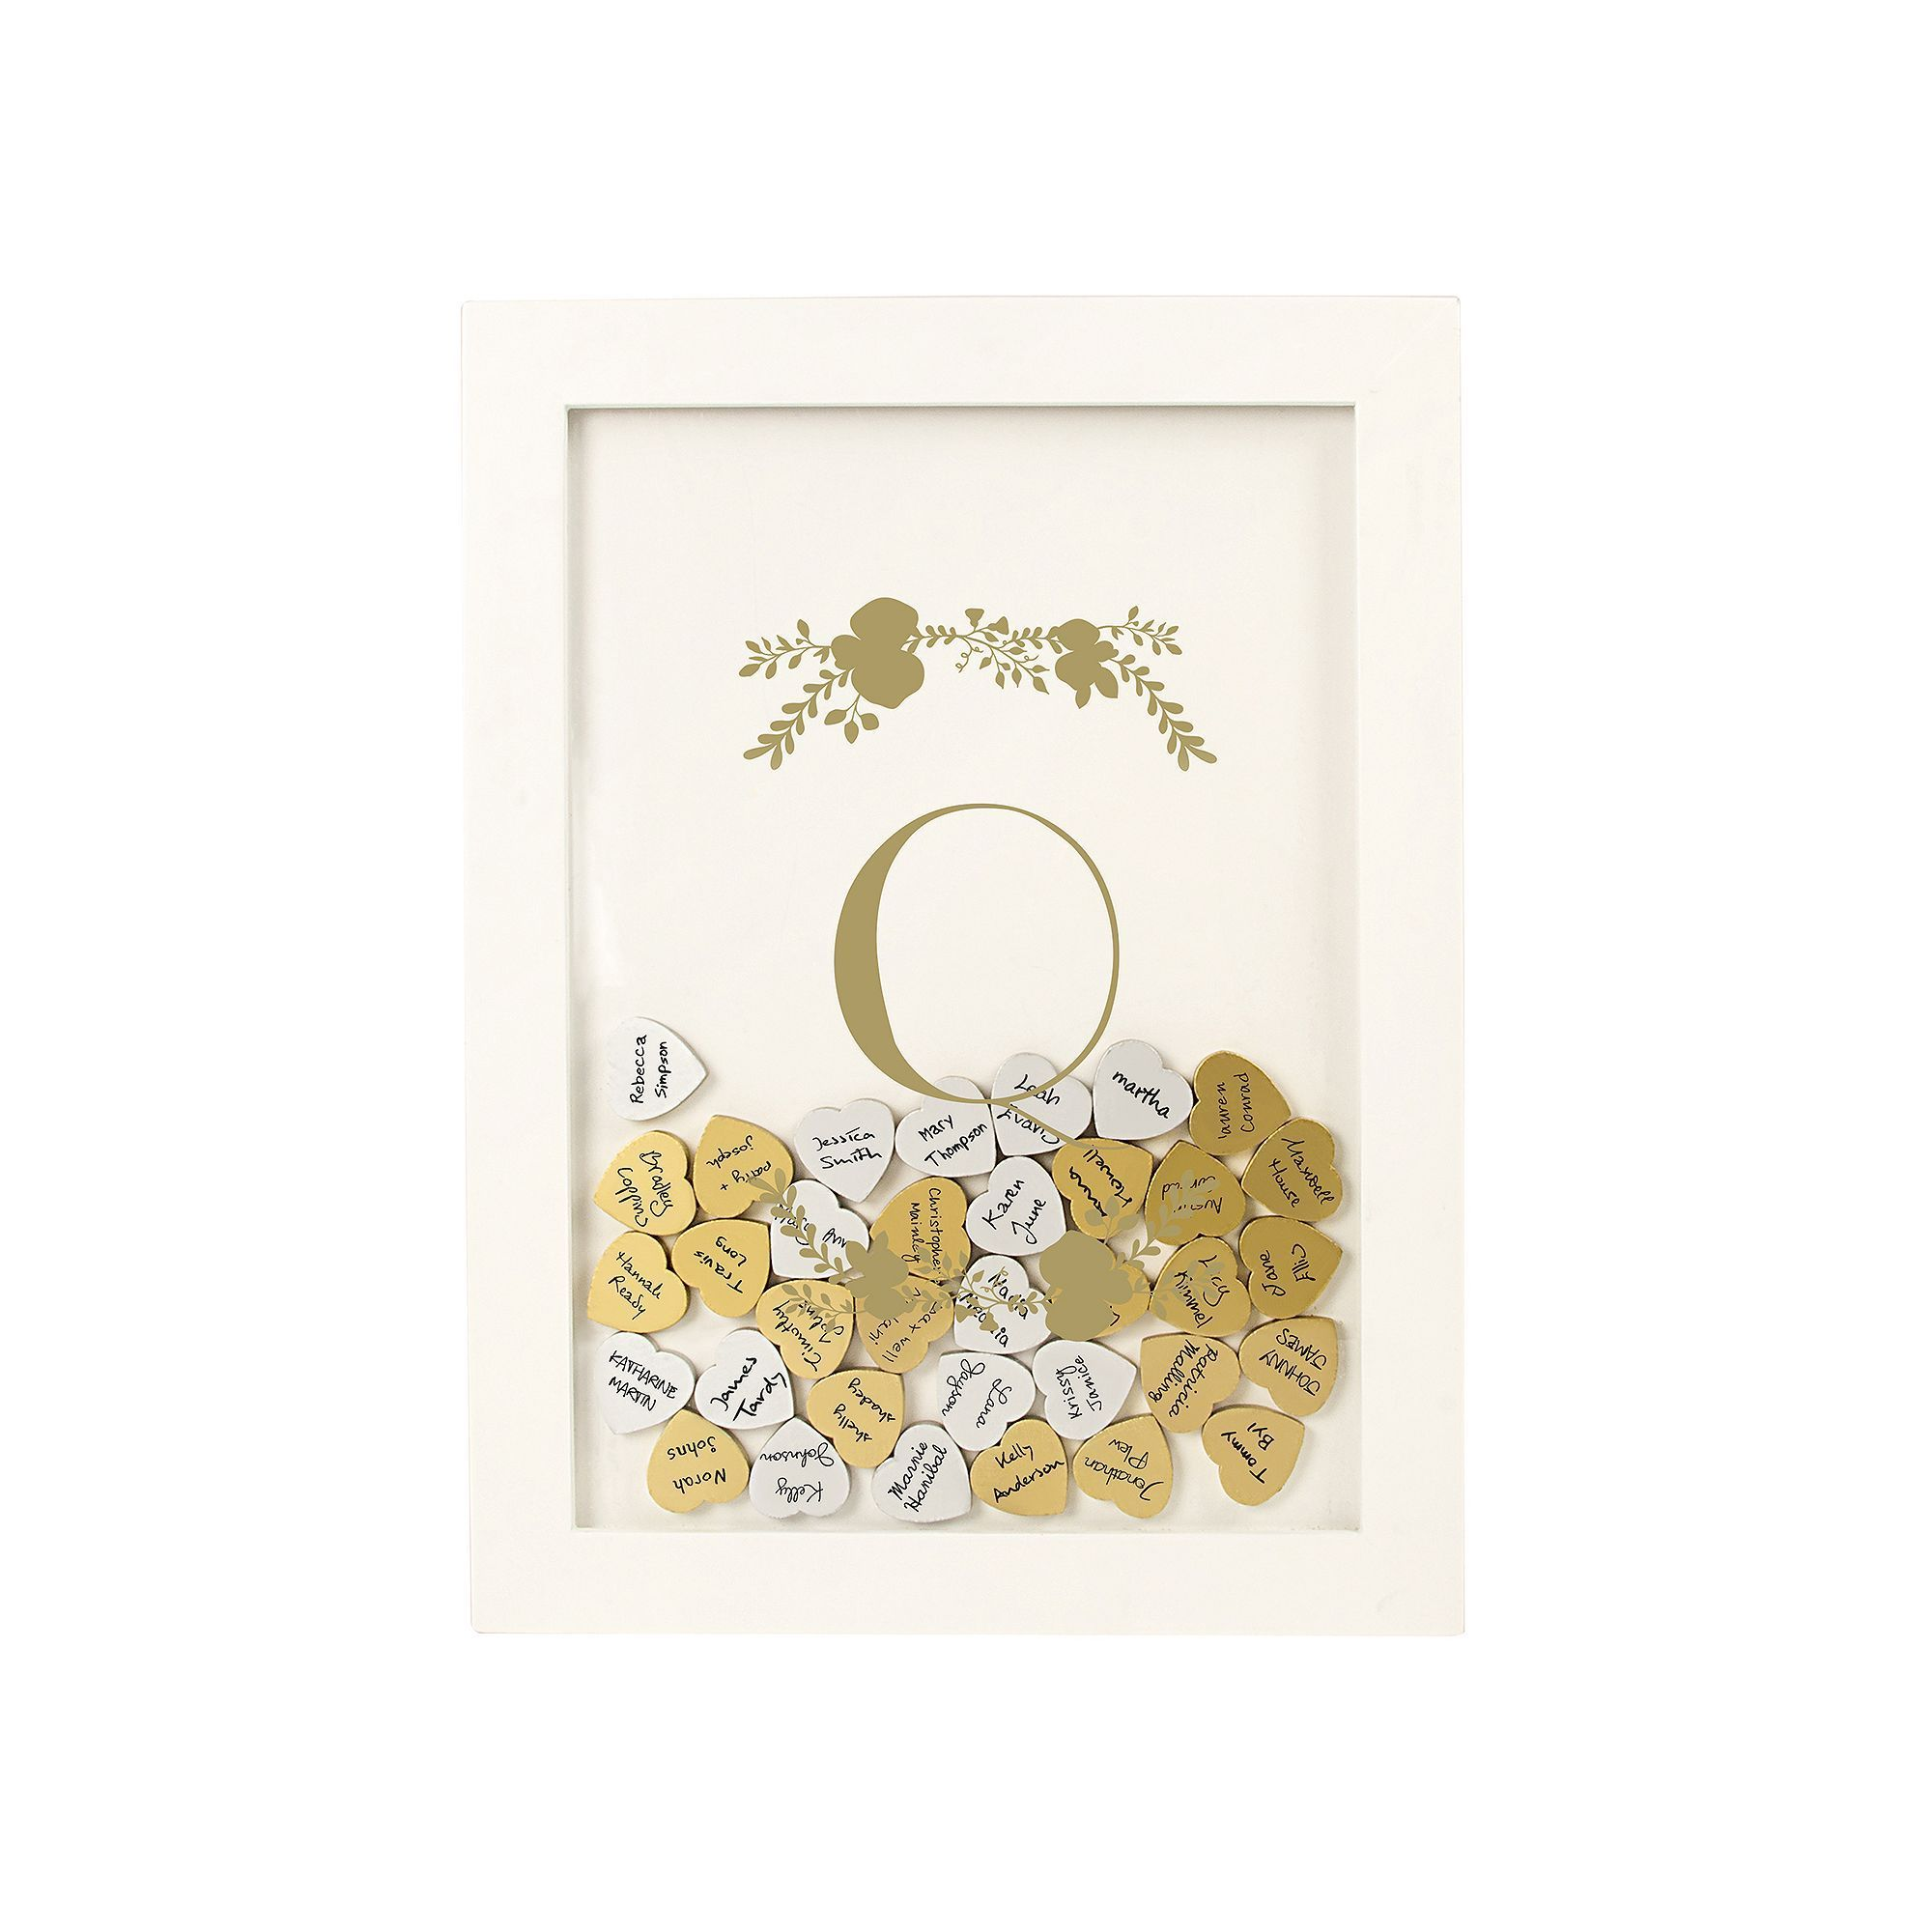 Cathy's Concepts Gold Finish Monogram Shadowbox Heart Drop Guestbook 101-piece Set, Yellow